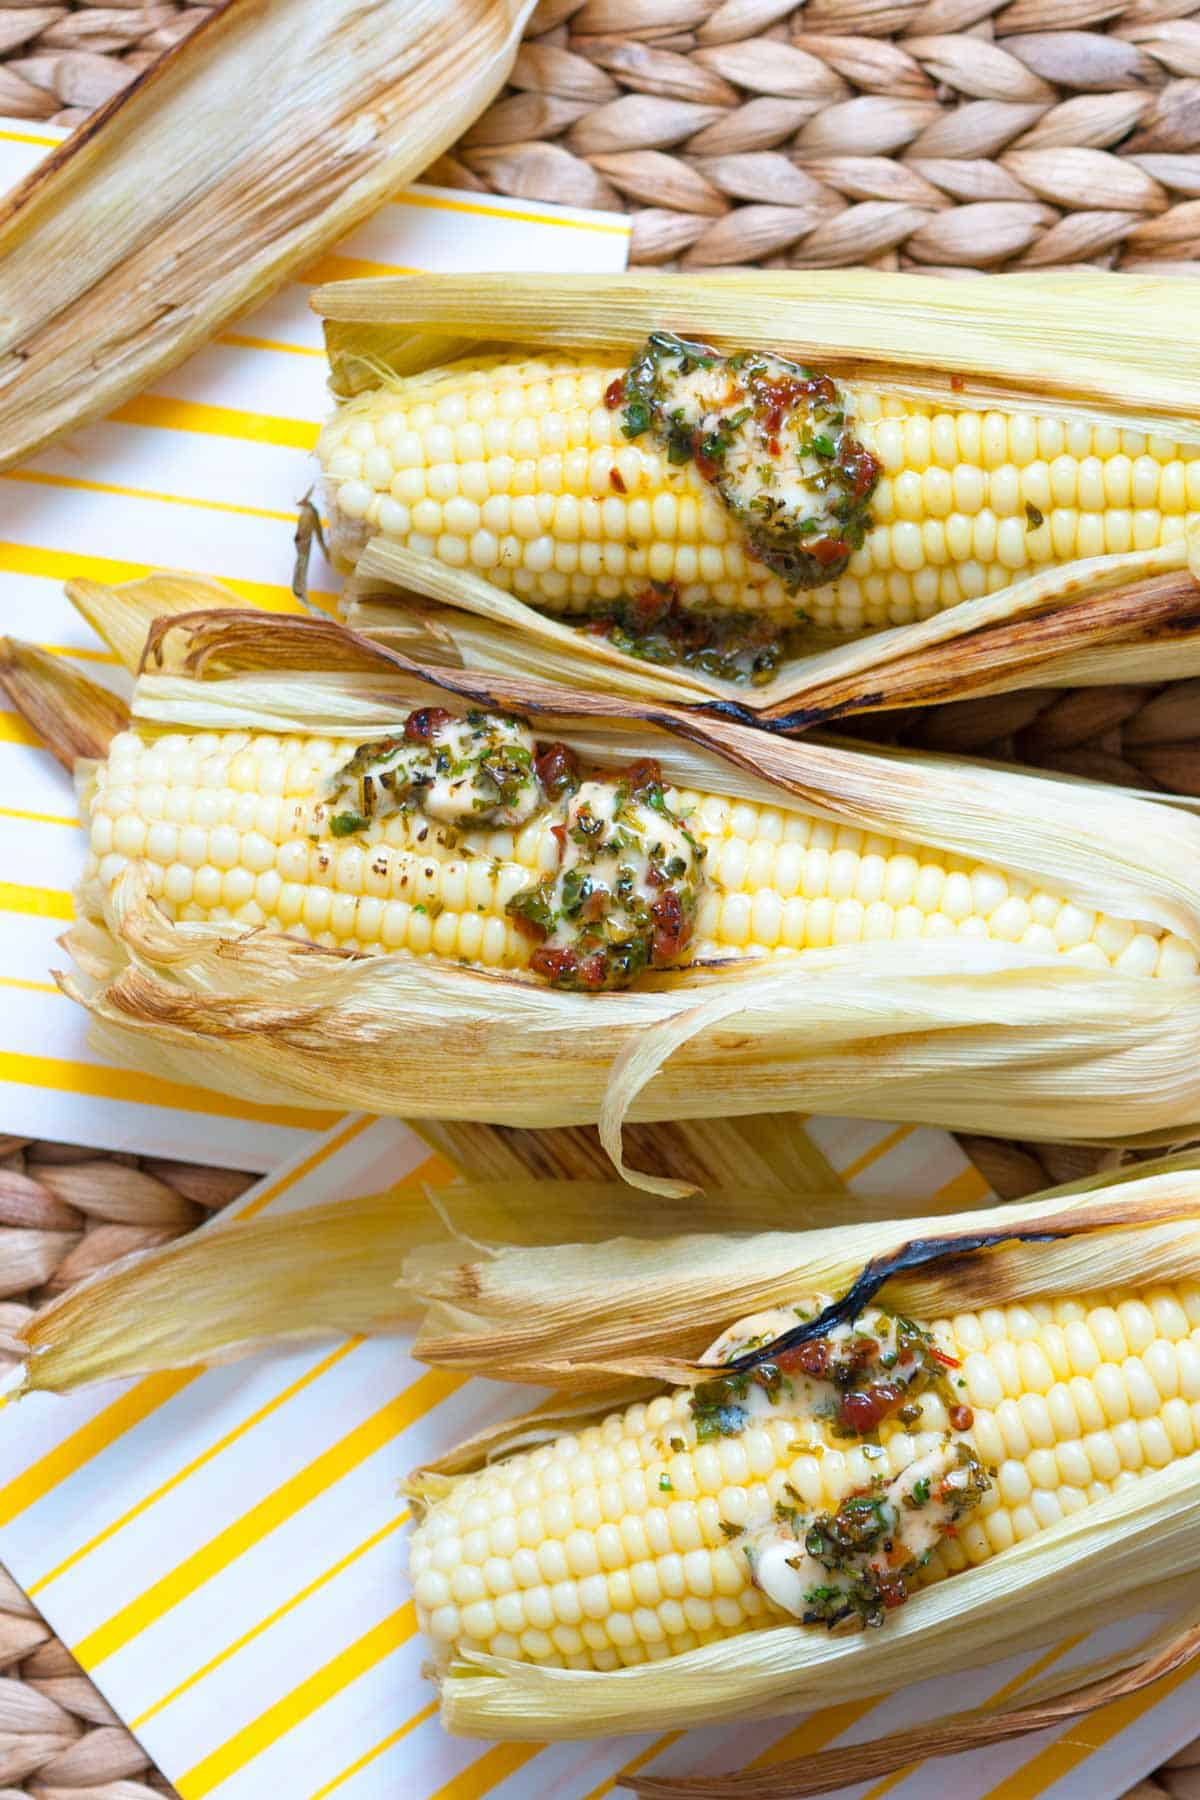 How to Bake Corn in the Oven